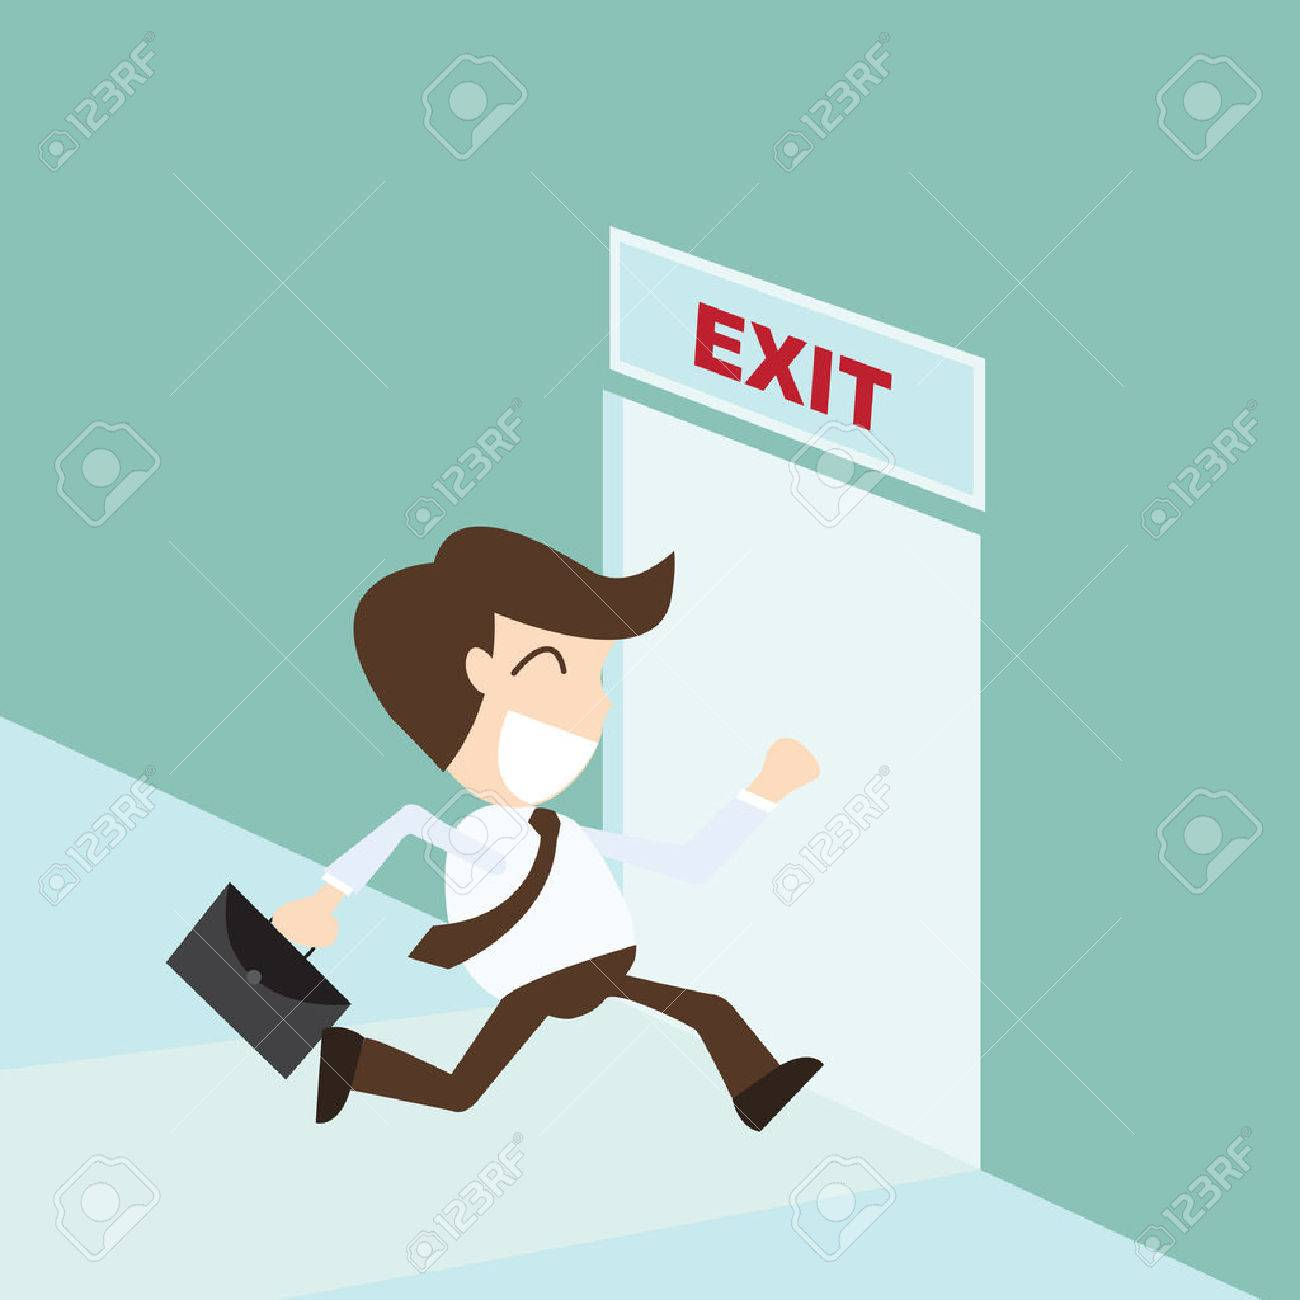 Emergency stop icon clipart emergency off - Emergency Stop Exit Businessman Running Exit Door Sign Emergency